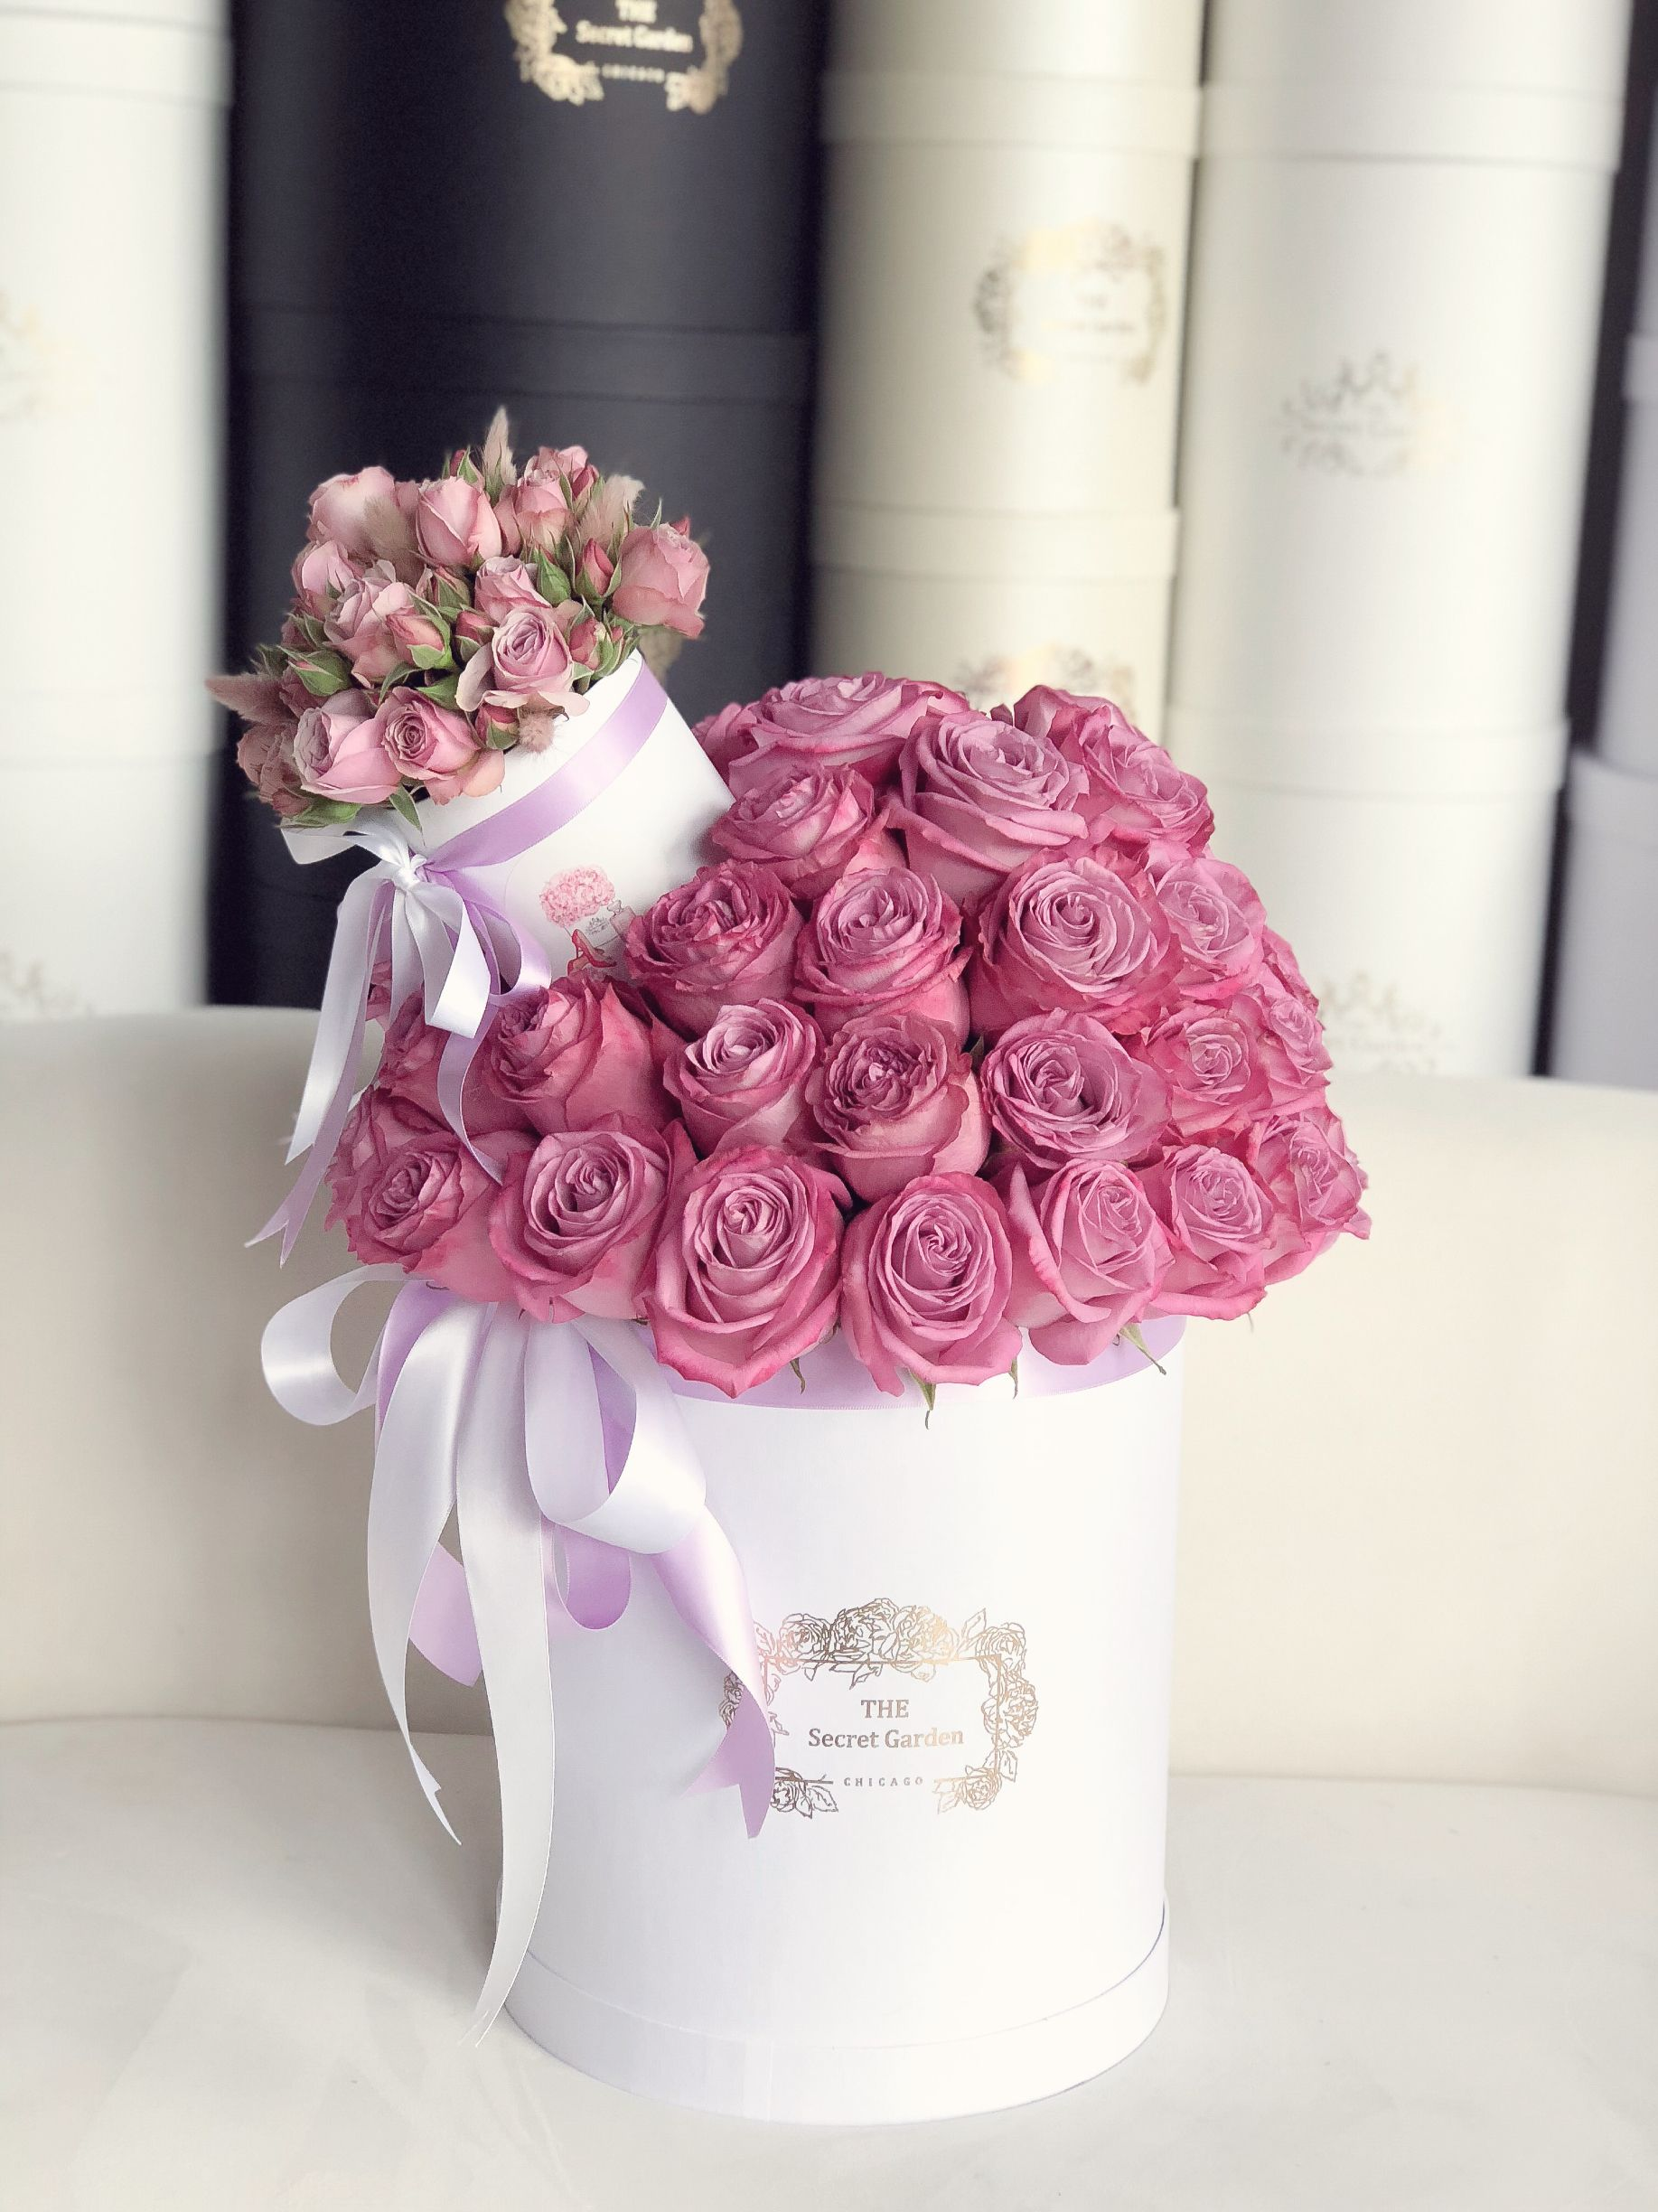 Birthday Wishes Flowers in Pinks /& Purples comes with decorated envelope